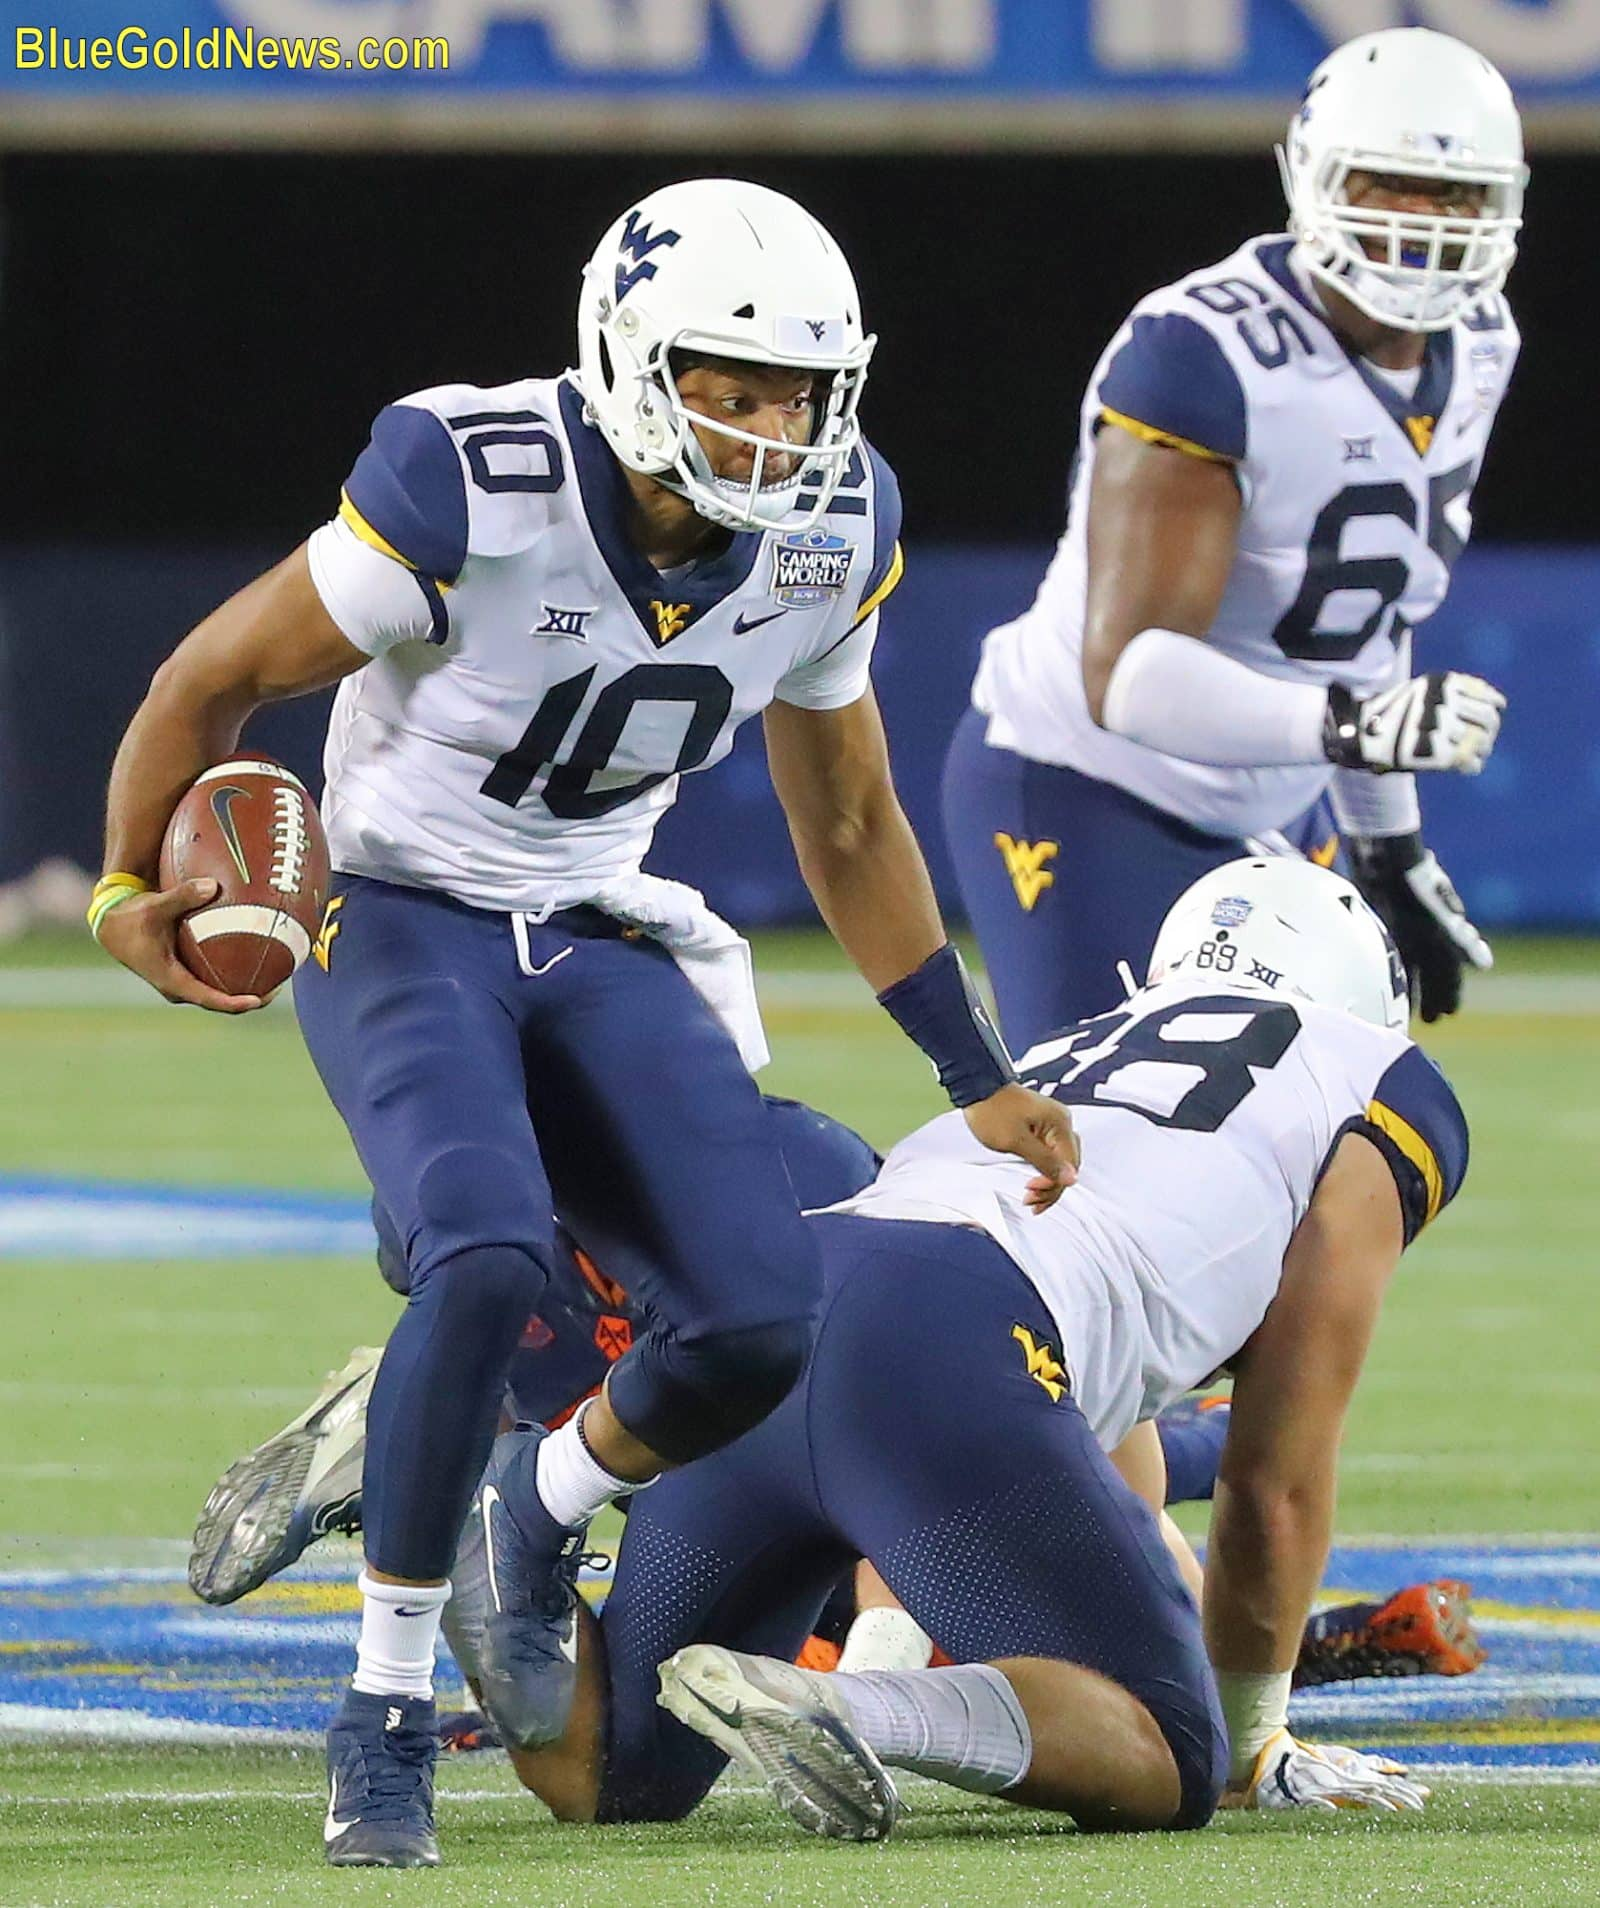 Qb Battle On Tap For Wvu Wvu West Virginia Mountaineers Sports